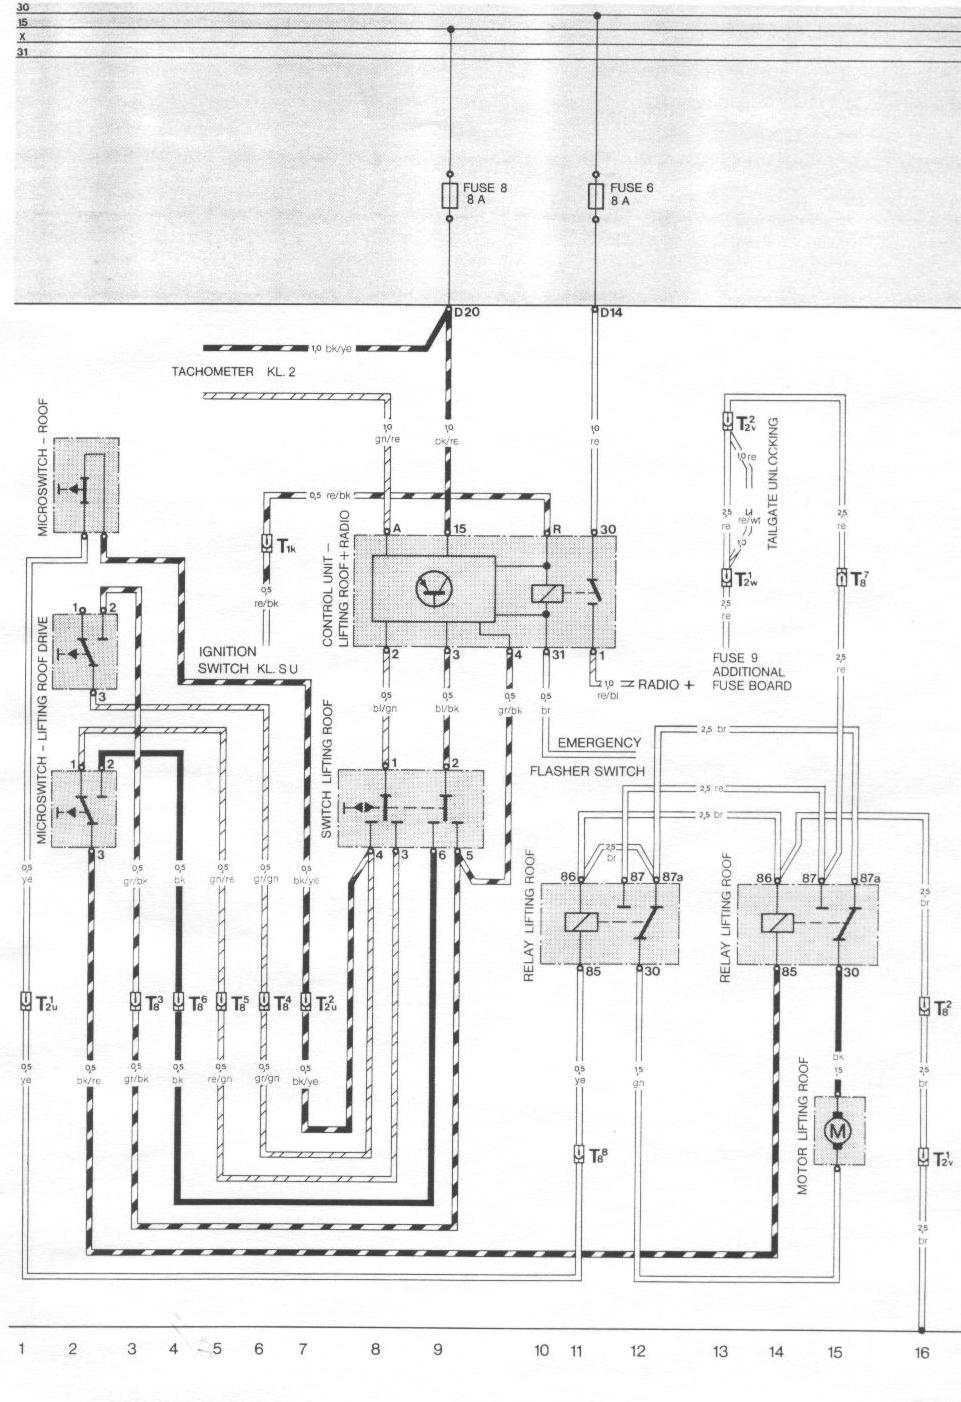 Wiring Diagram For 1986 Porsche 944